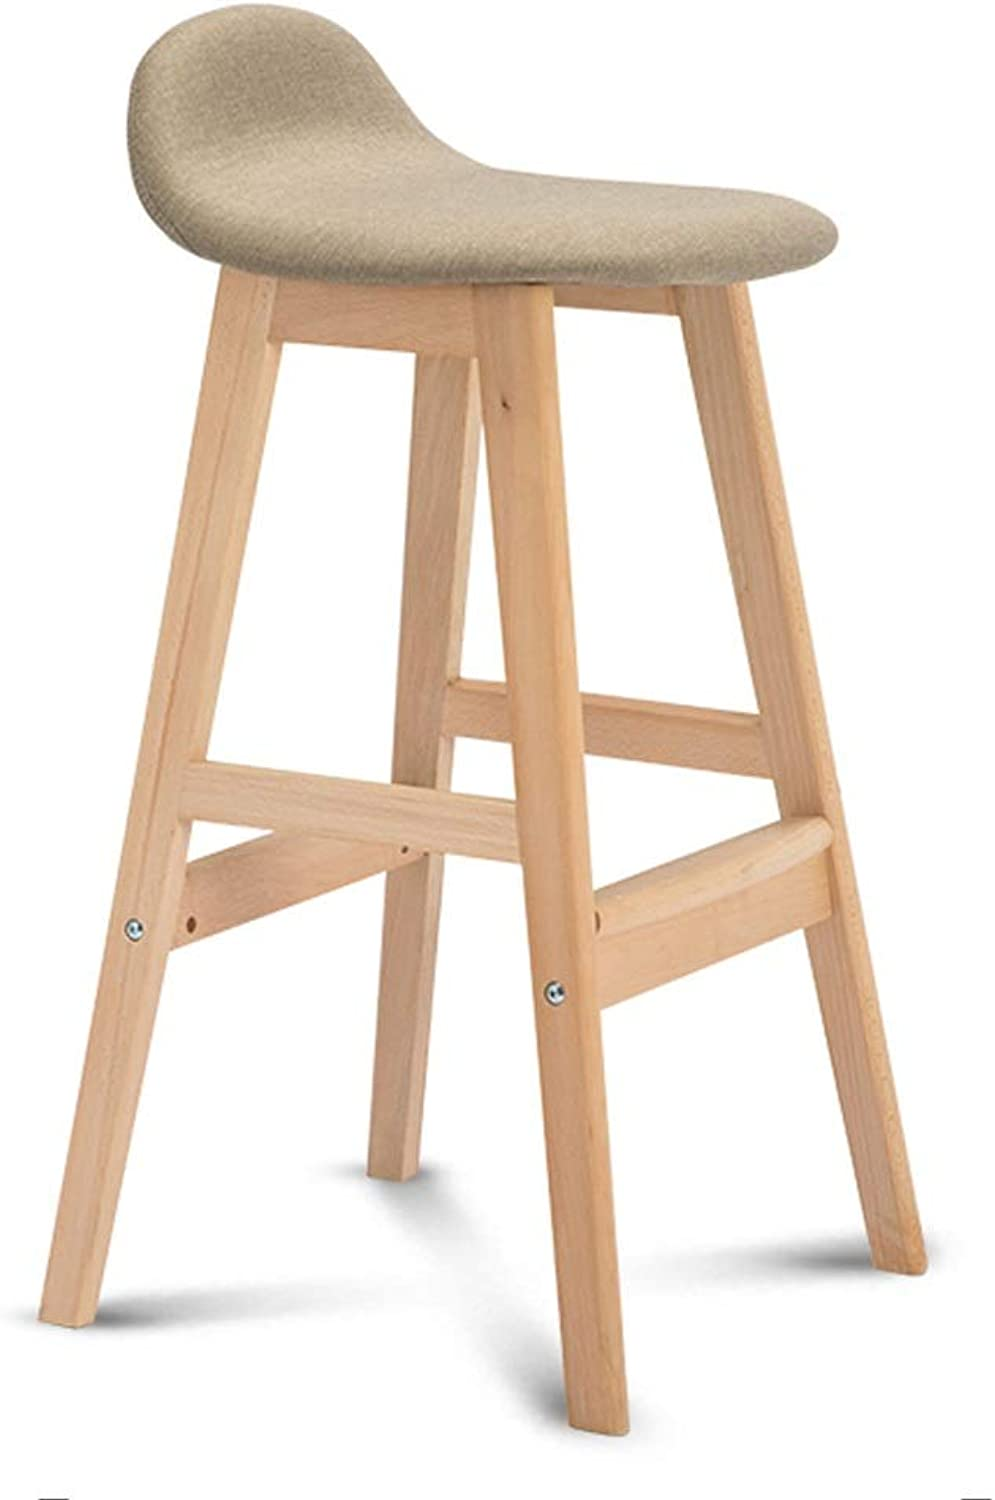 Barstools - Breakfast Stool Wood Bar Chair Linen Bar Stool with Widened Footrest Barstools for Kitchen Counter 0509A (color   Beige)